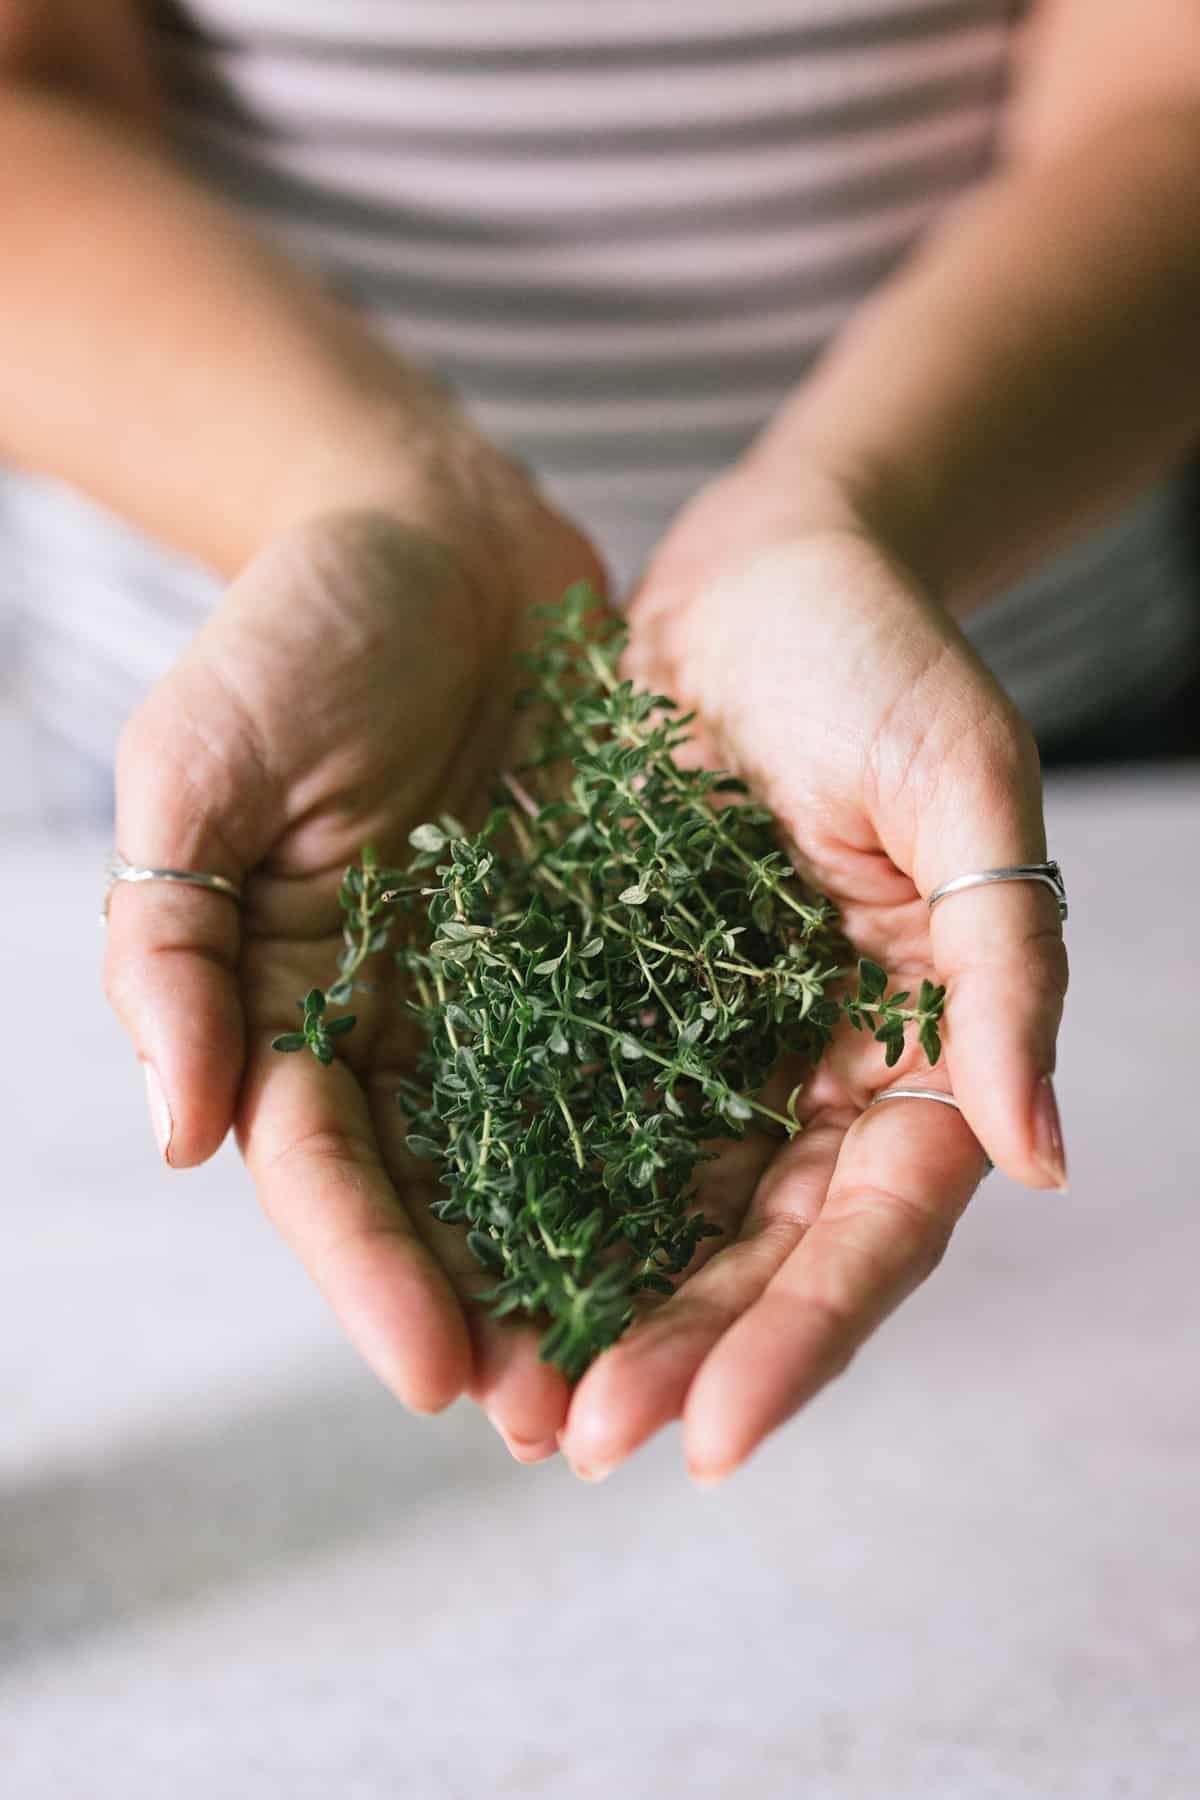 Hands holding a bunch of fresh lemon thyme.